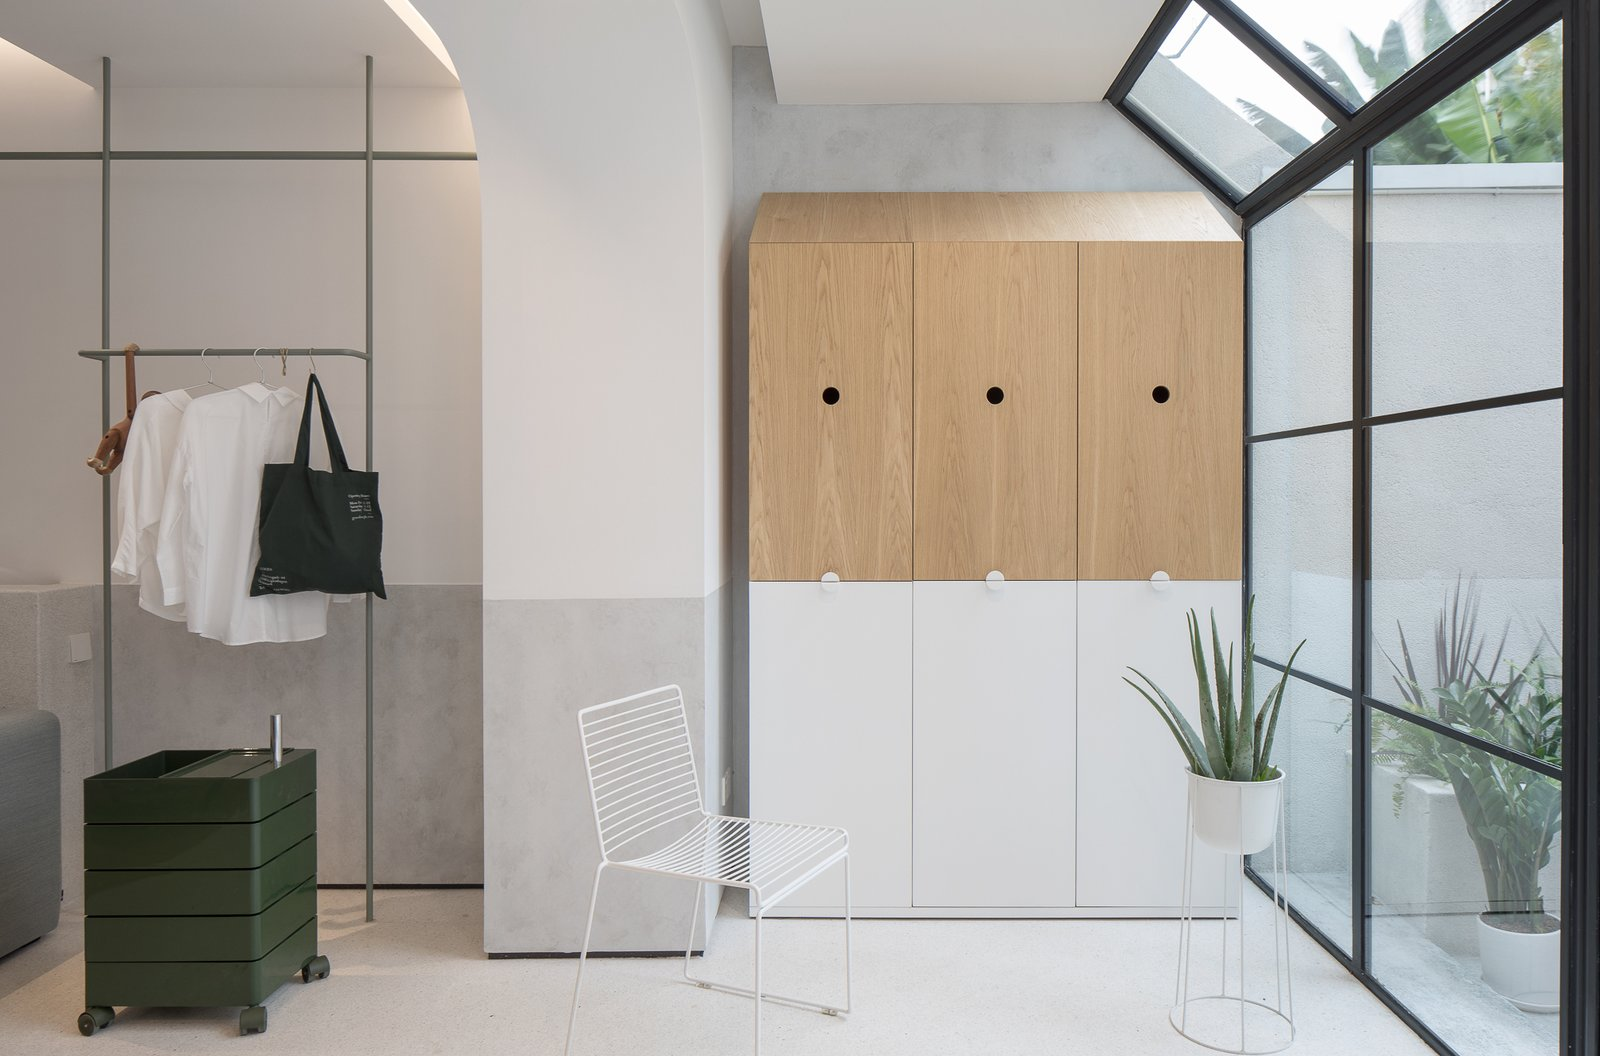 Living Room, Chair, Storage, and Accent Lighting RIGI Design reshaped the form and functionality of the interior layout.   Best Photos from A Sunny Stairwell Brings Light to an Old Shanghai Dwelling